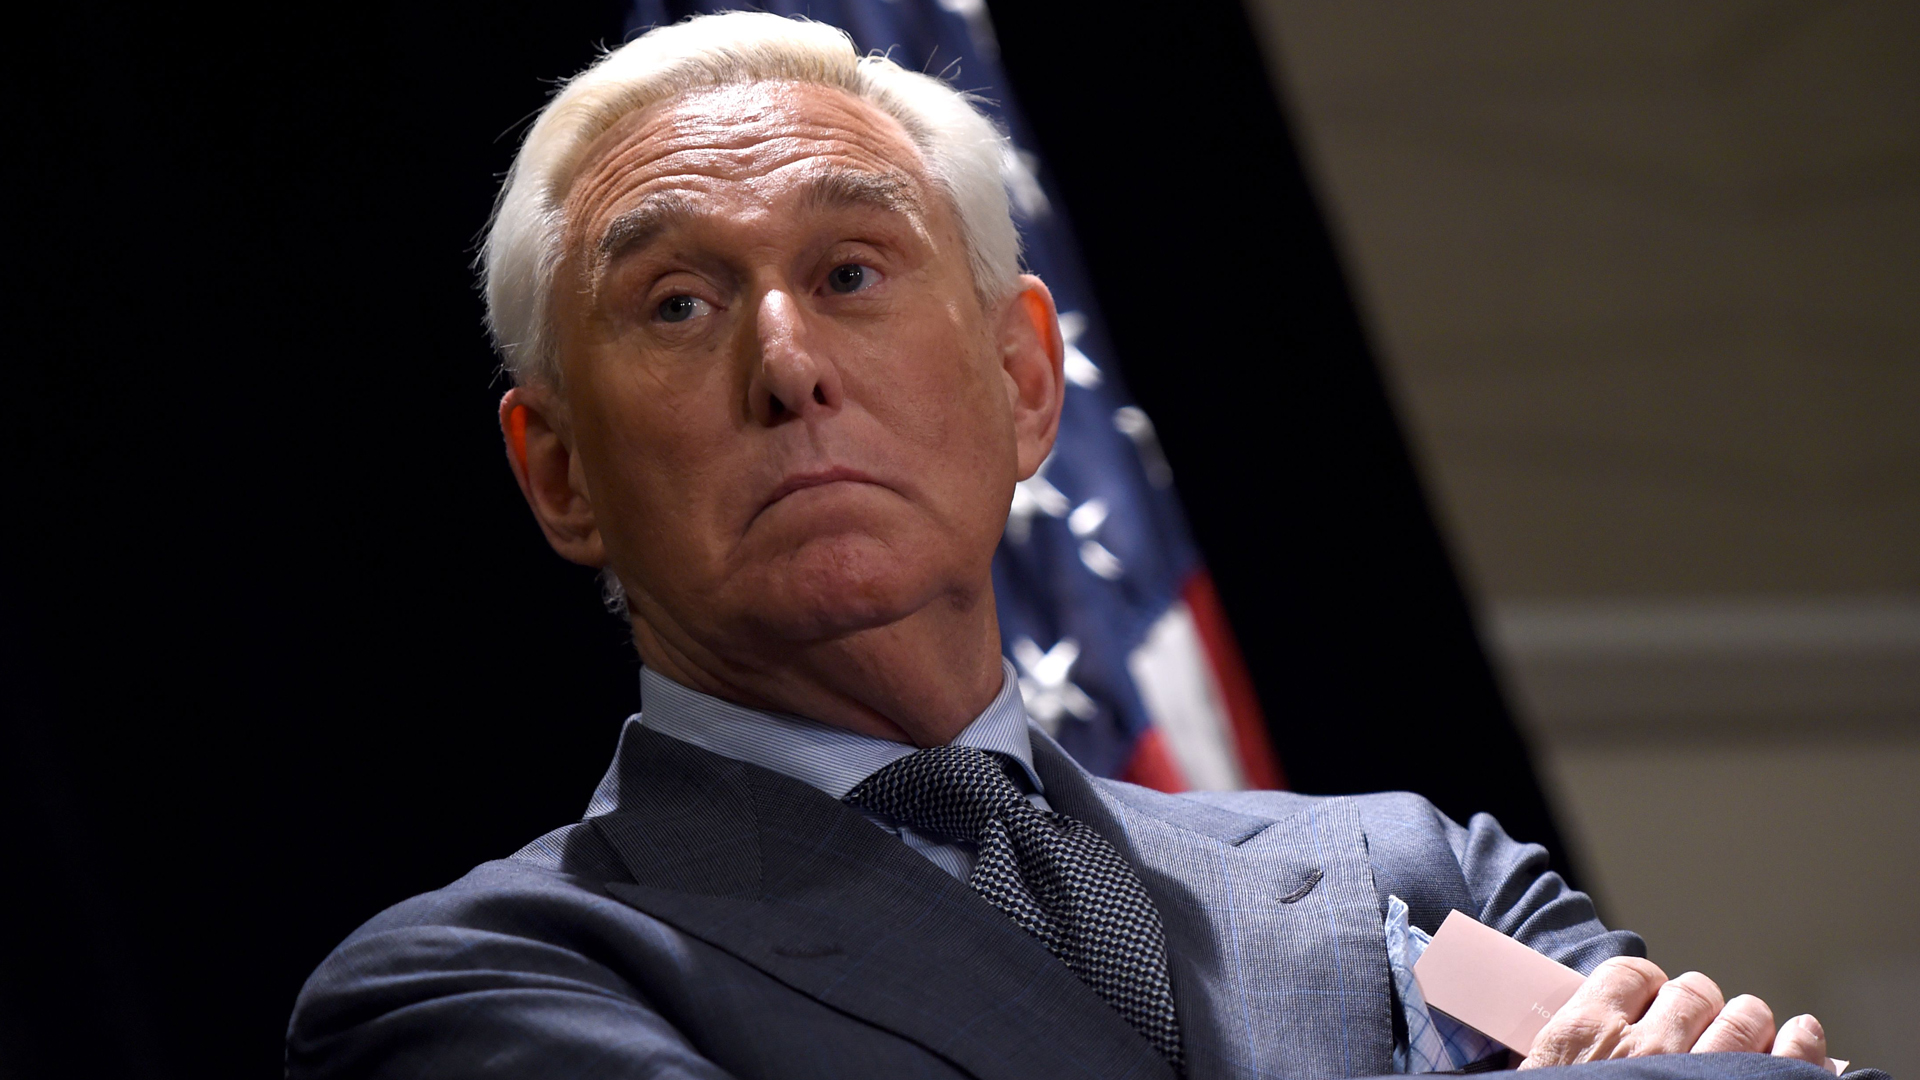 Roger Stone speaks to the press in Washington D.C., on Jan. 31, 2019. (Credit: Andrew Caballero-Reynolds/AFP/Getty Images)